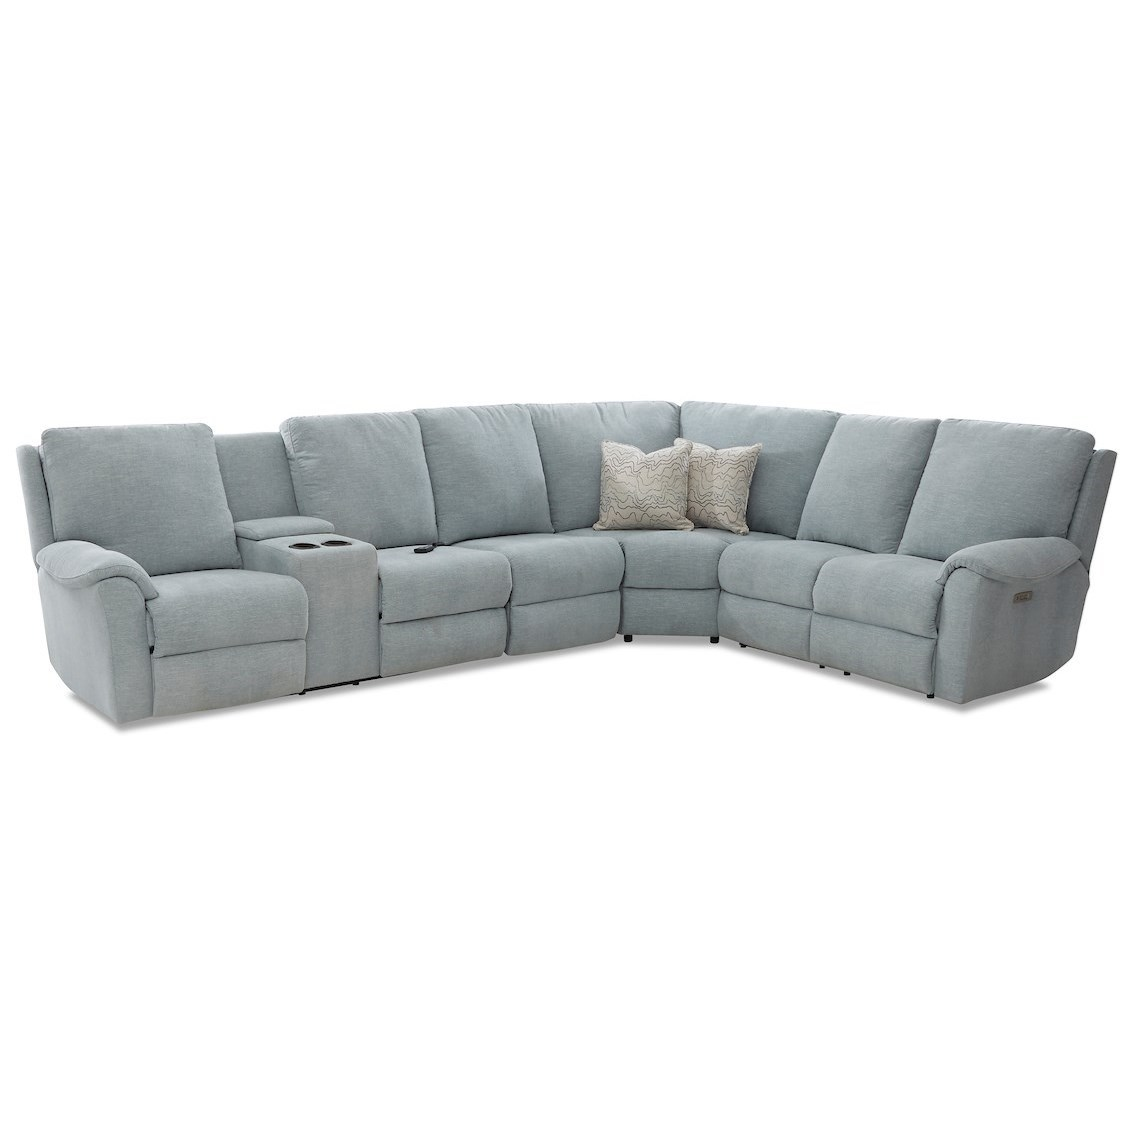 Davos Pwr Recline Sectional w/LAF Cnsl/Pwr Head/Ma by Klaussner at Johnny Janosik